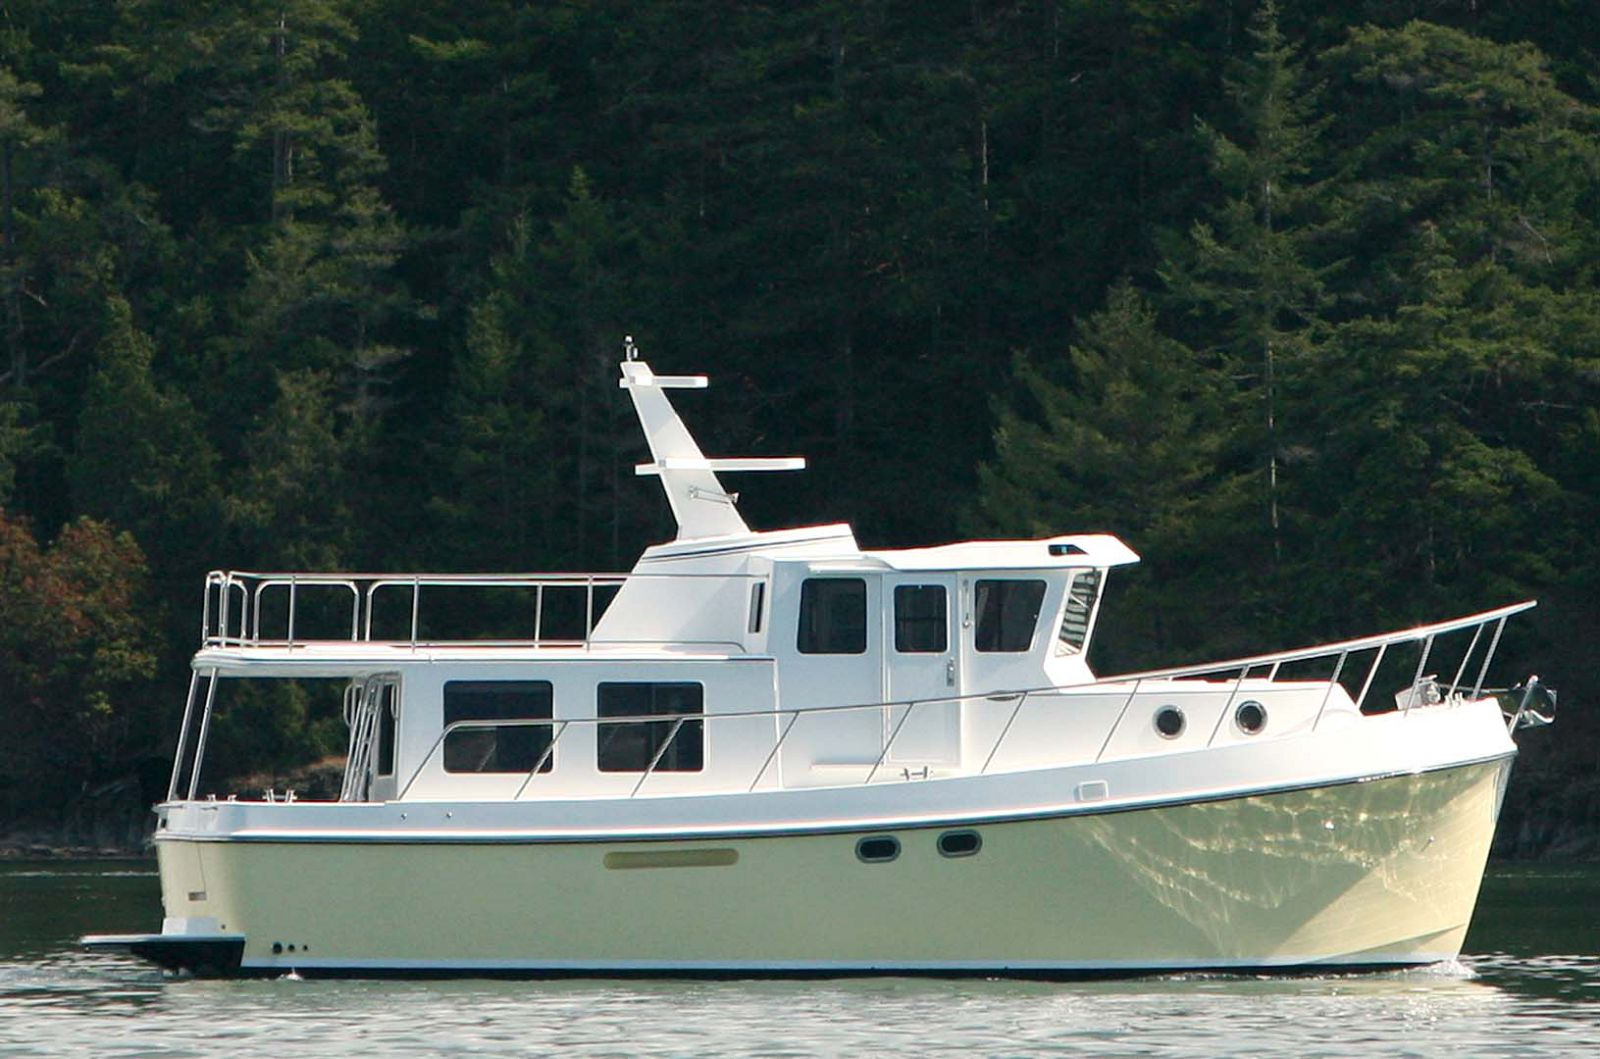 Side profile image of the american tug 435